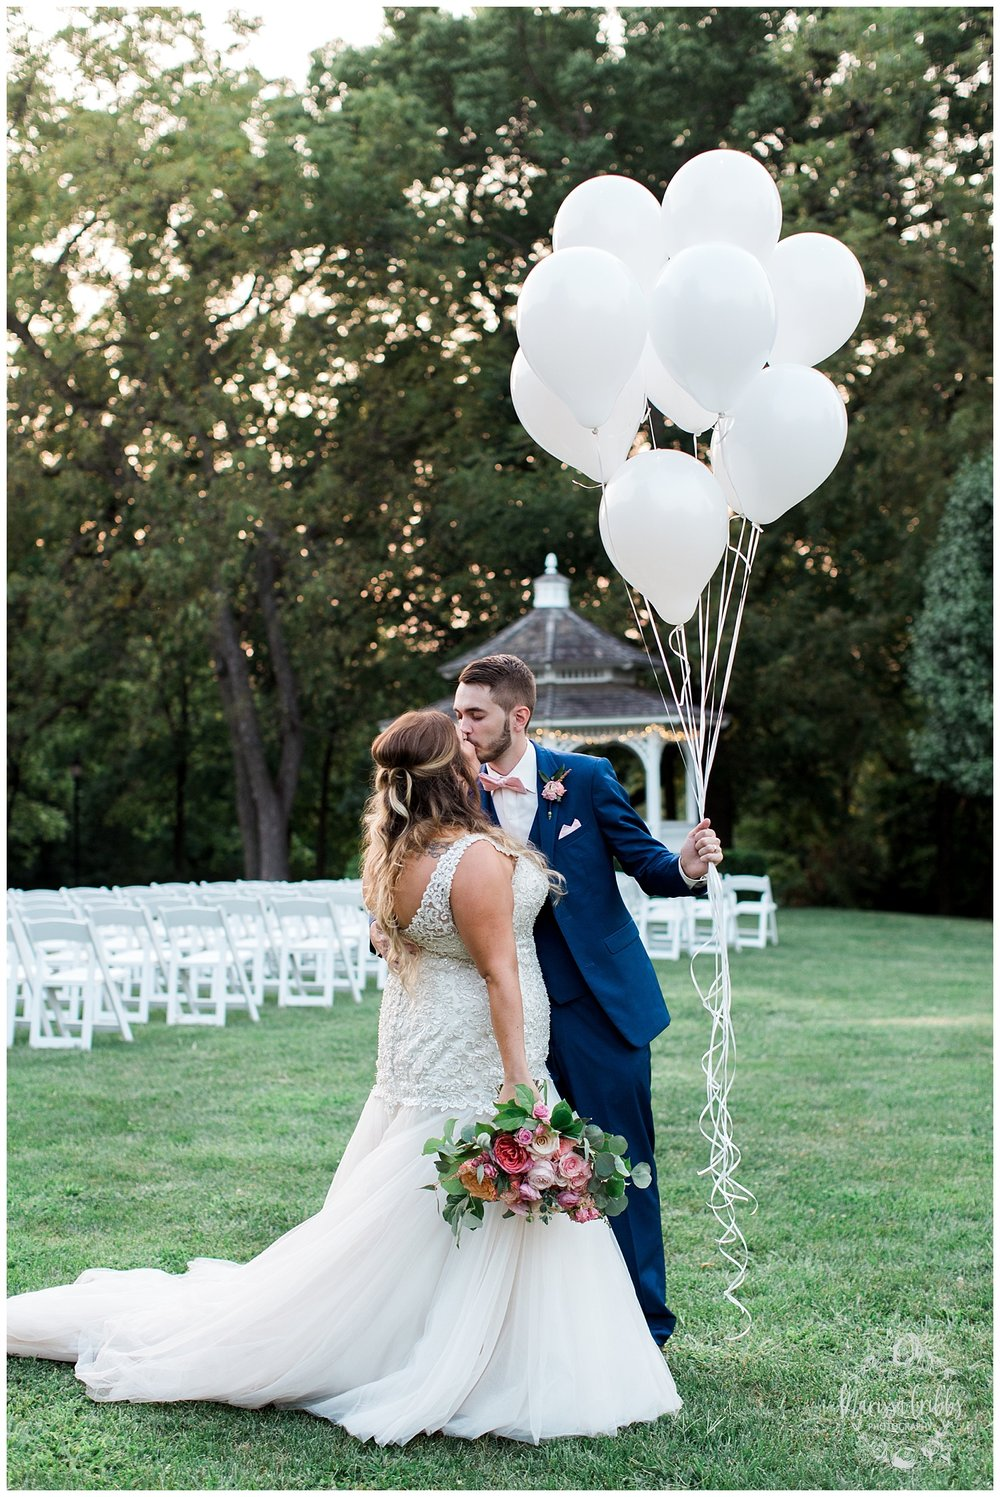 DANI & MICHAEL MARRIED | HAWTHORNE HOUSE WEDDING | MARISSA CRIBBS PHOTOGRAPHY_2693.jpg